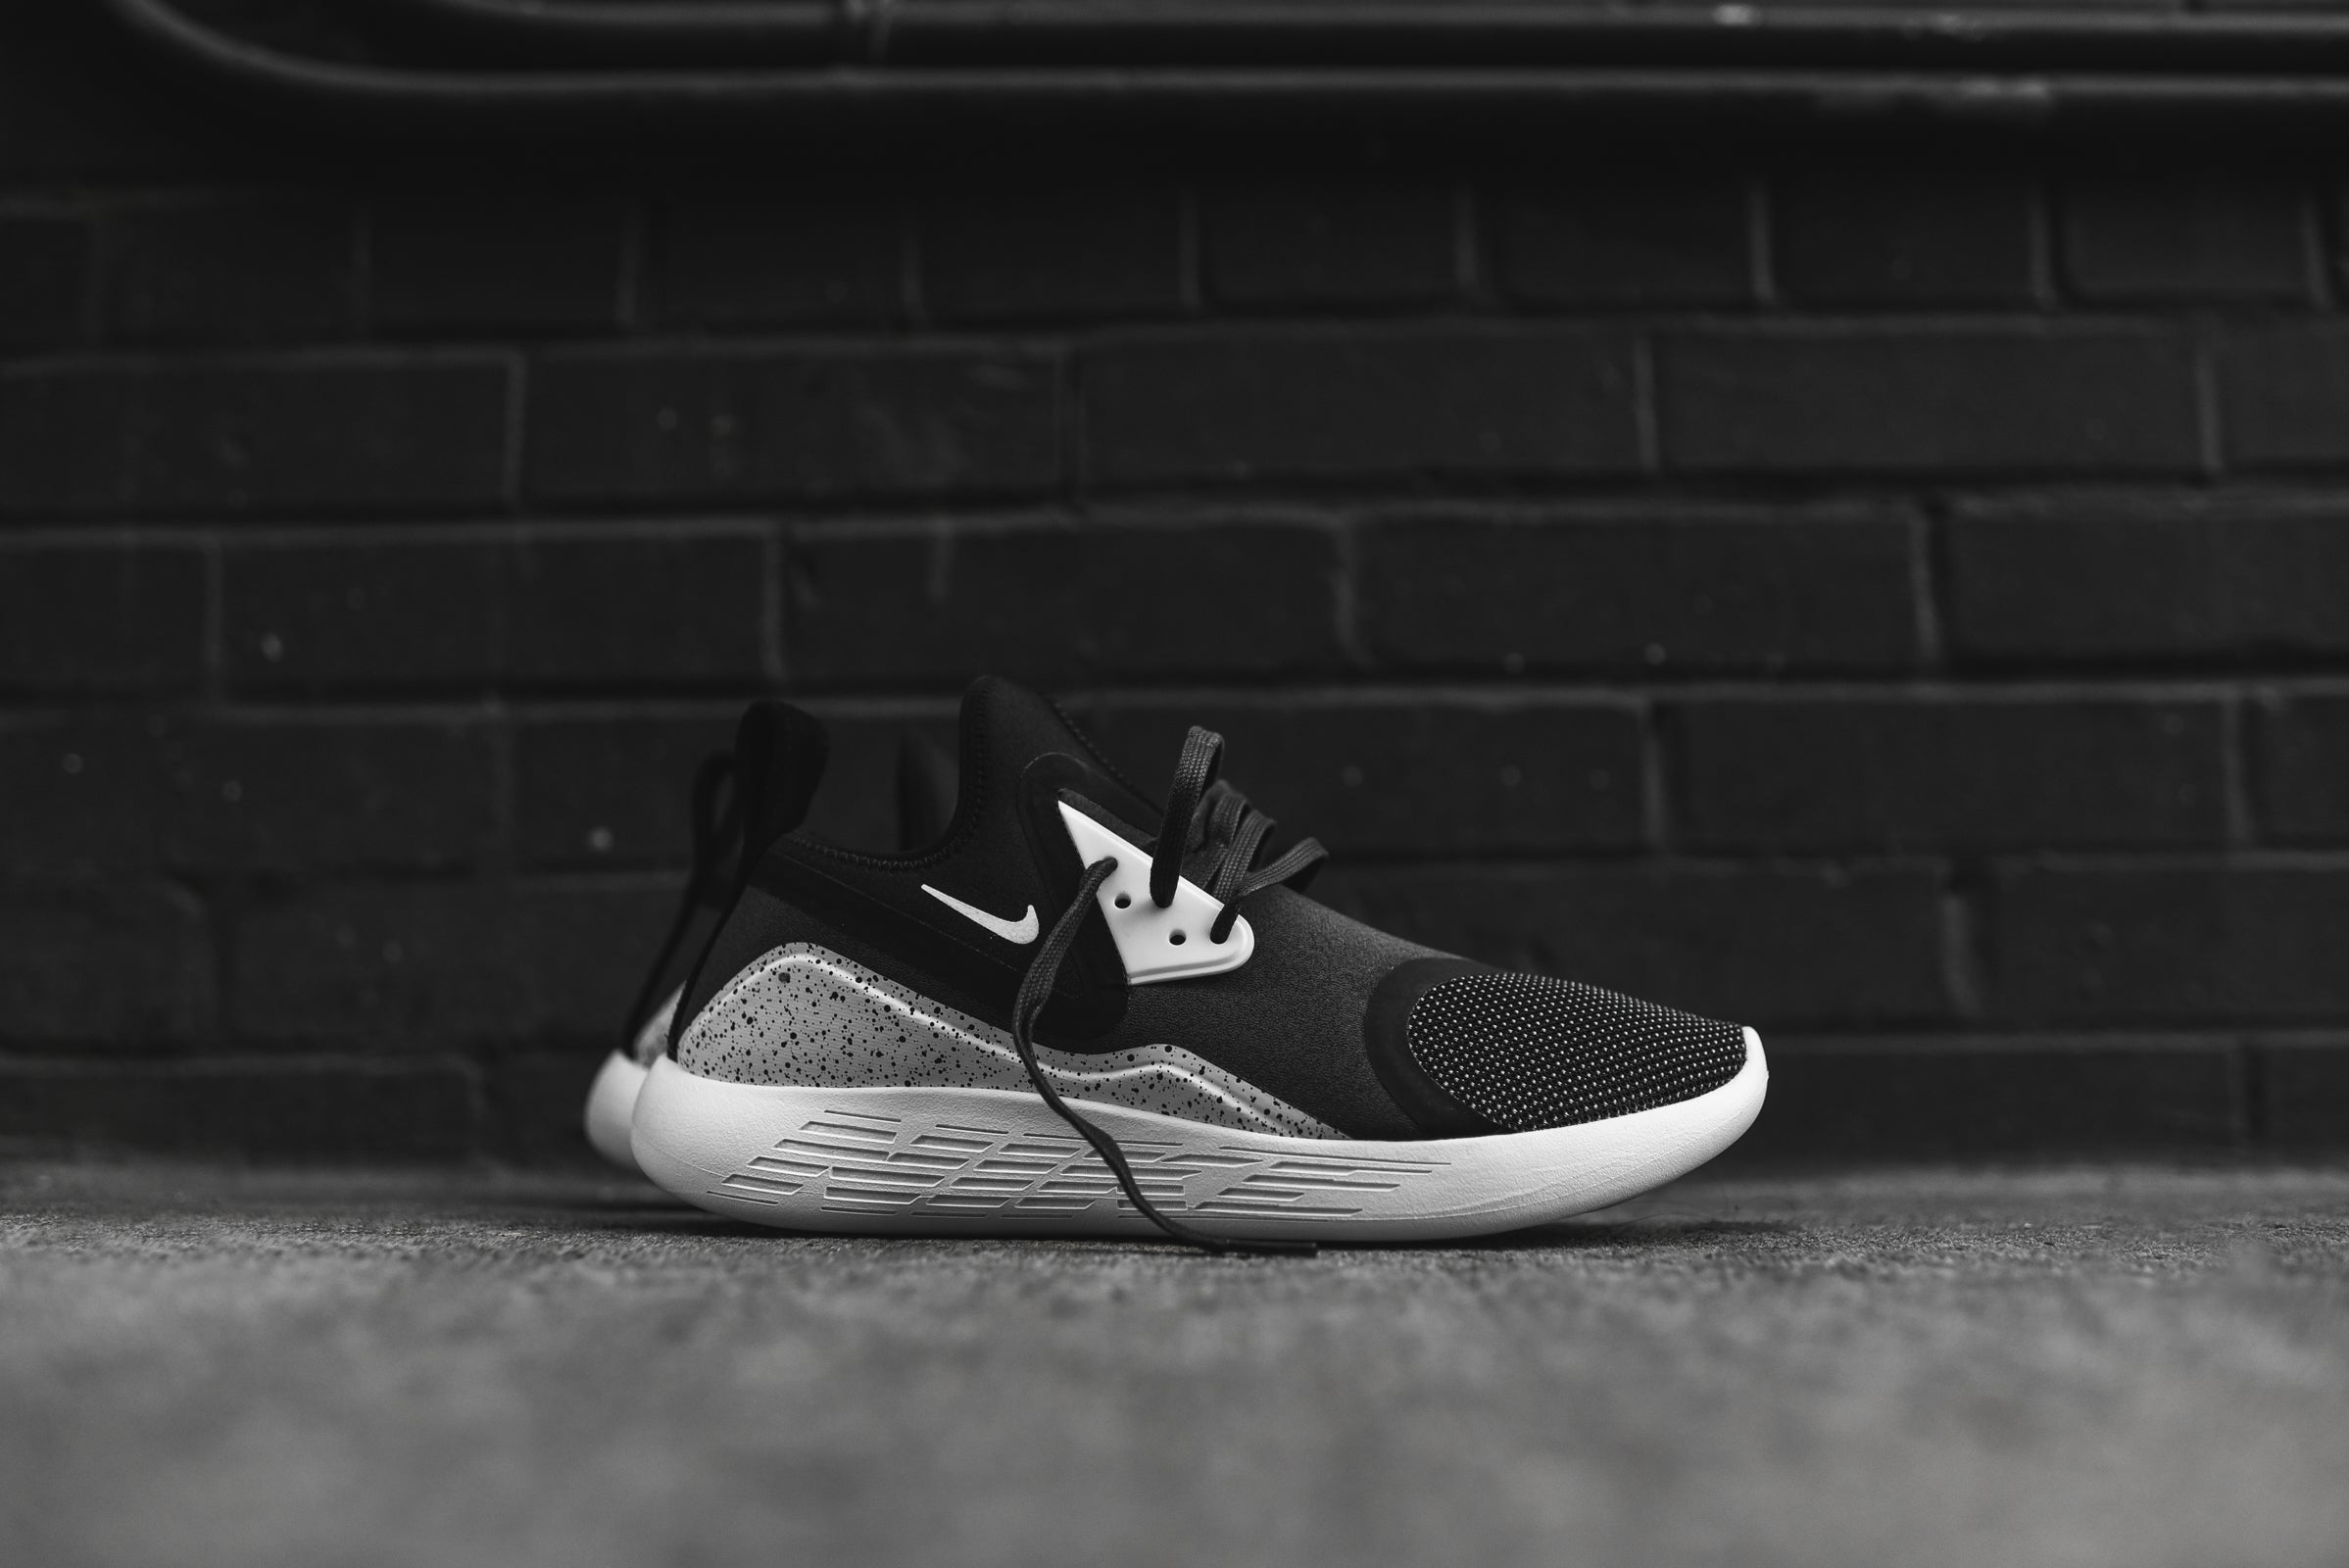 low priced 6b8a2 15461 Nike LunarCharge Premium LE – Kith